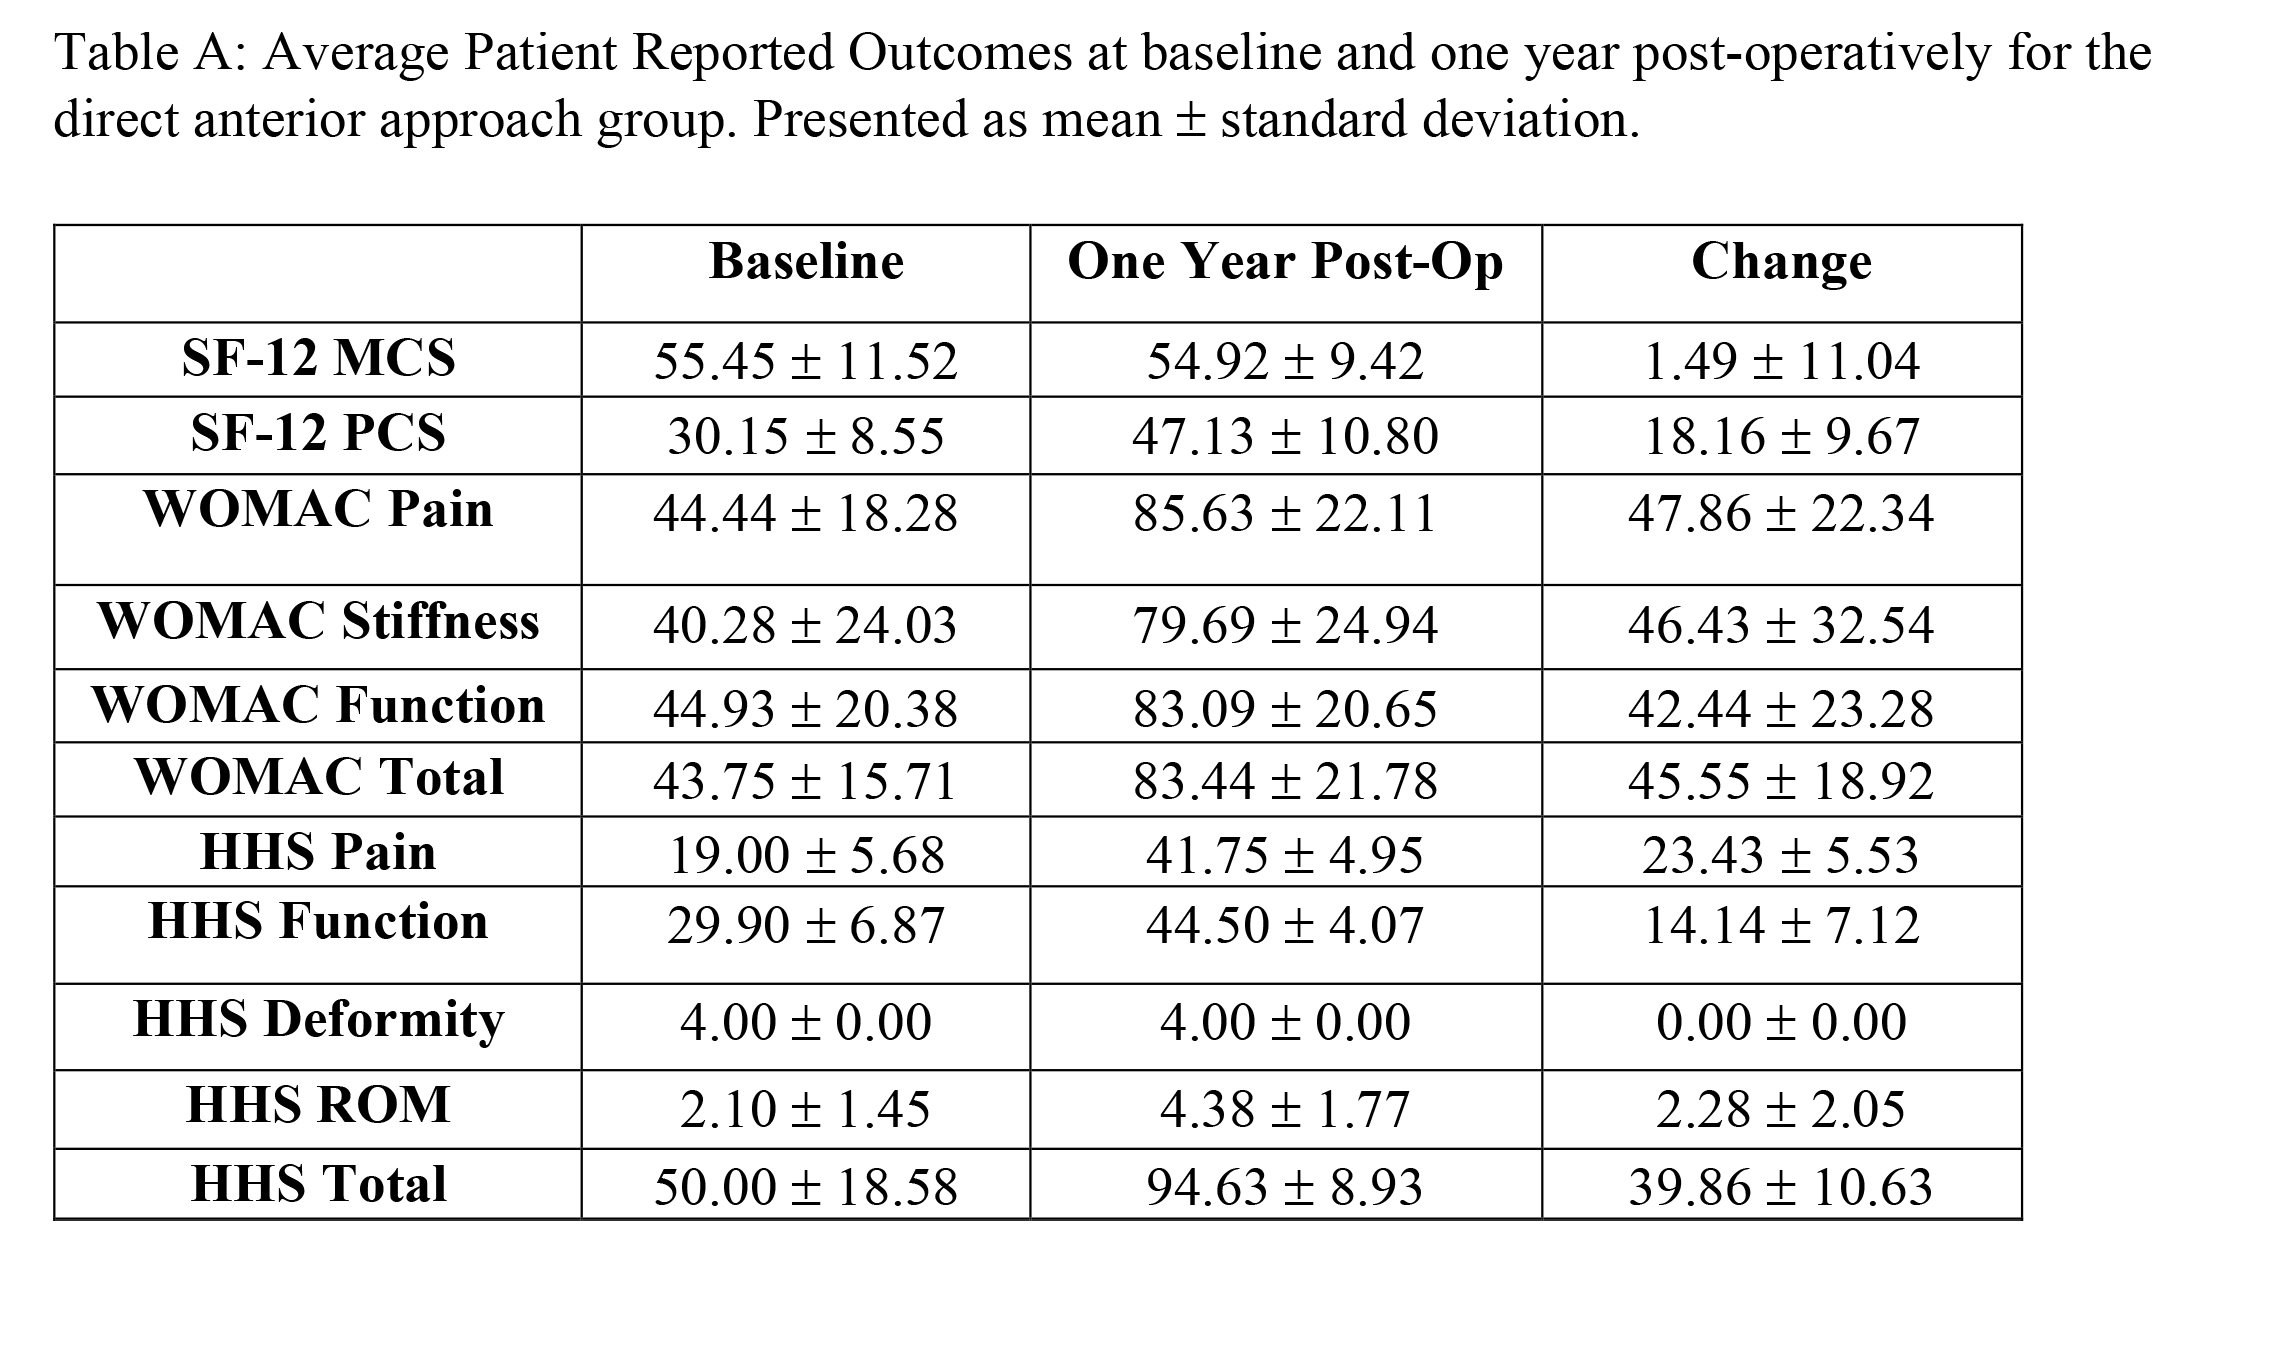 Average Patient Reported Outcomes at baseline and one year post-operatively for the direct anterior approach group. Presented as mean ± standard deviation.